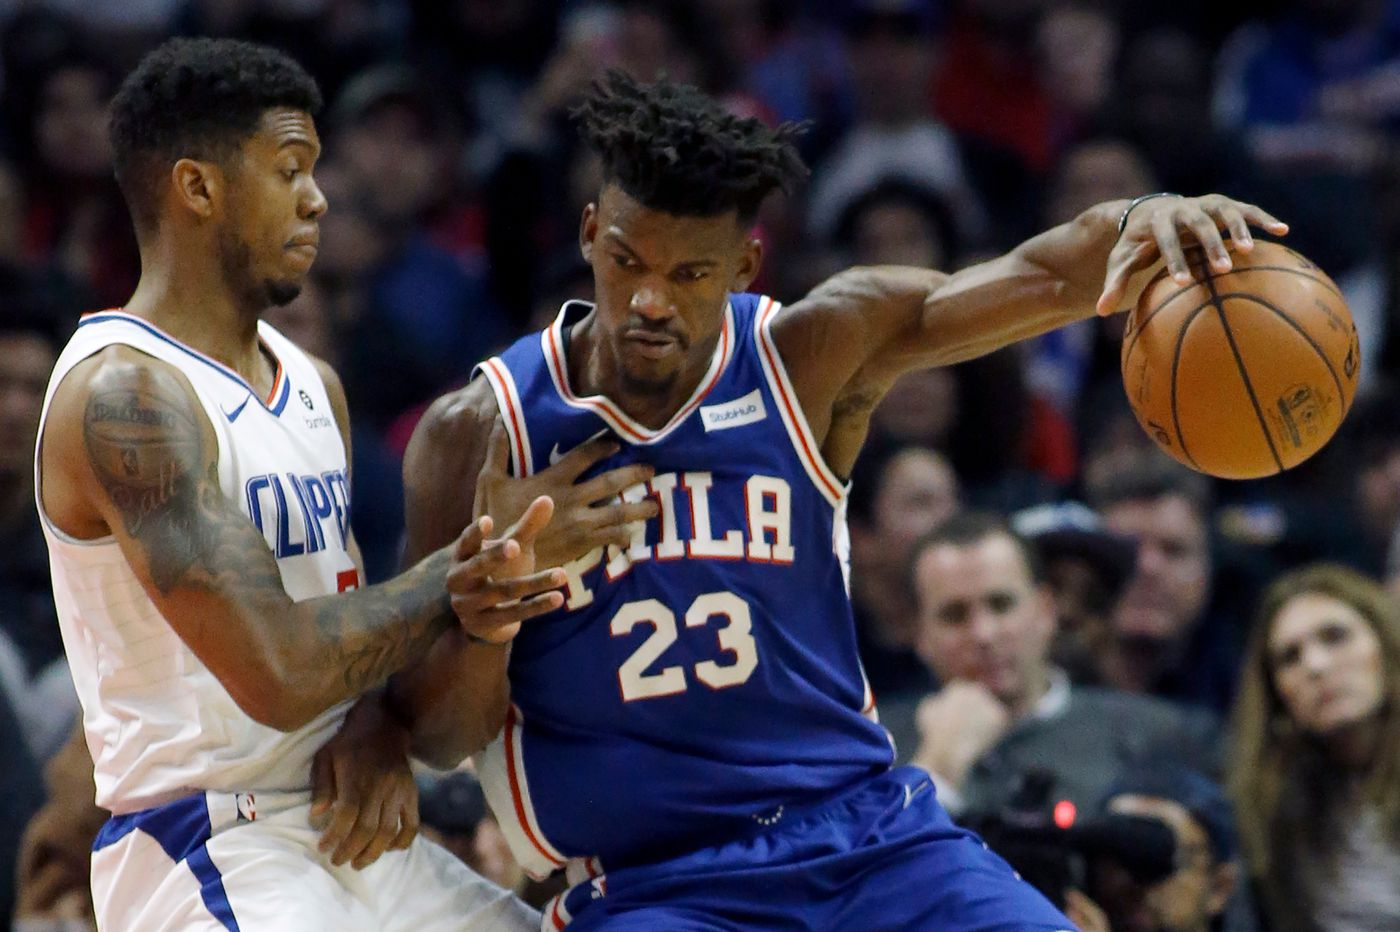 Sixers-Clippers observations: Patrick Beverley would be a good fit in Philly; Joel Embiid and Ben Simmons must coexist better